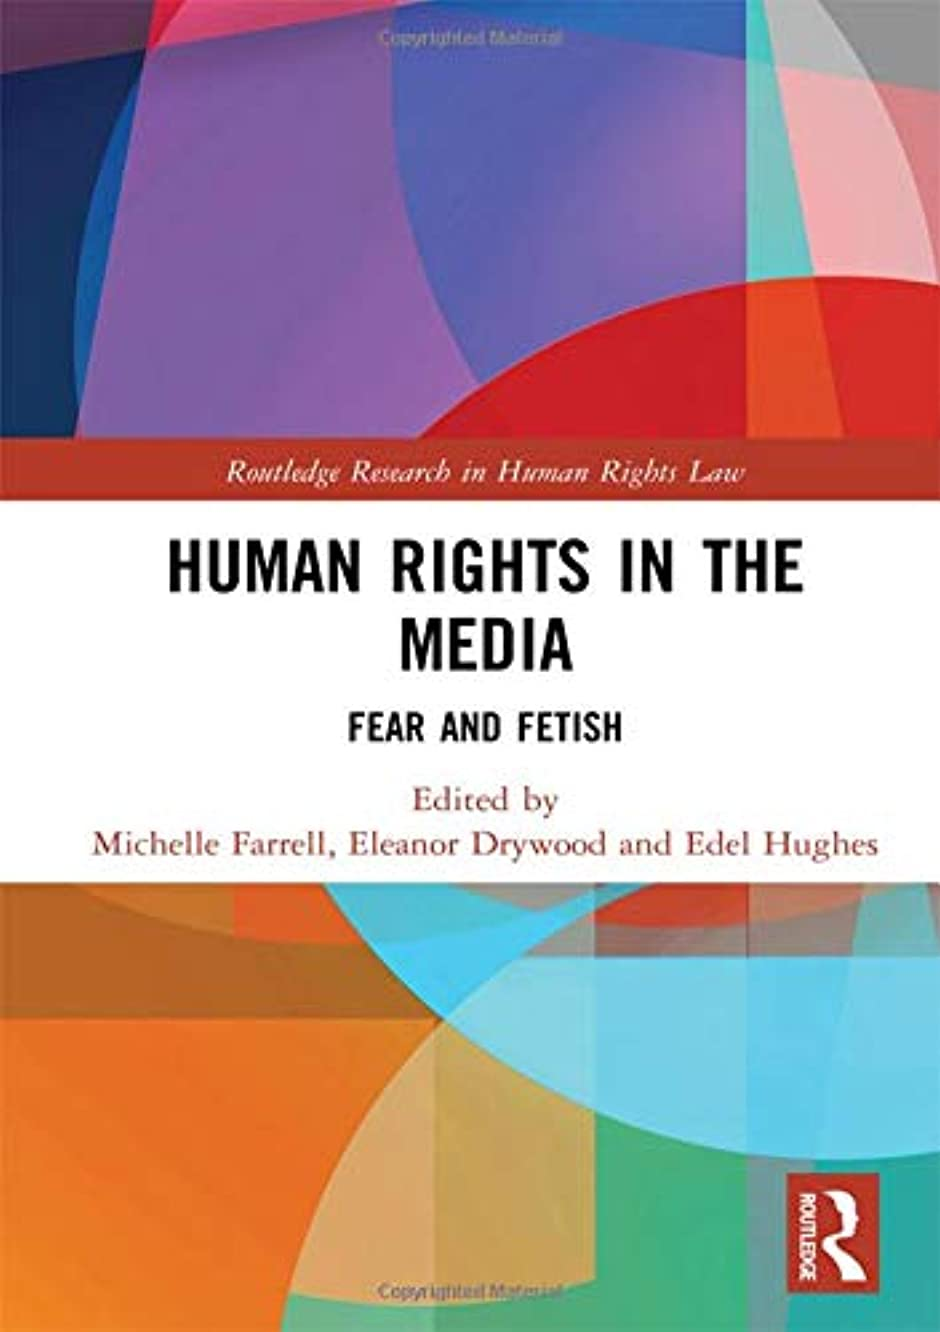 Human Rights in the Media: Fear and Fetish (Routledge Research in Human Rights Law)